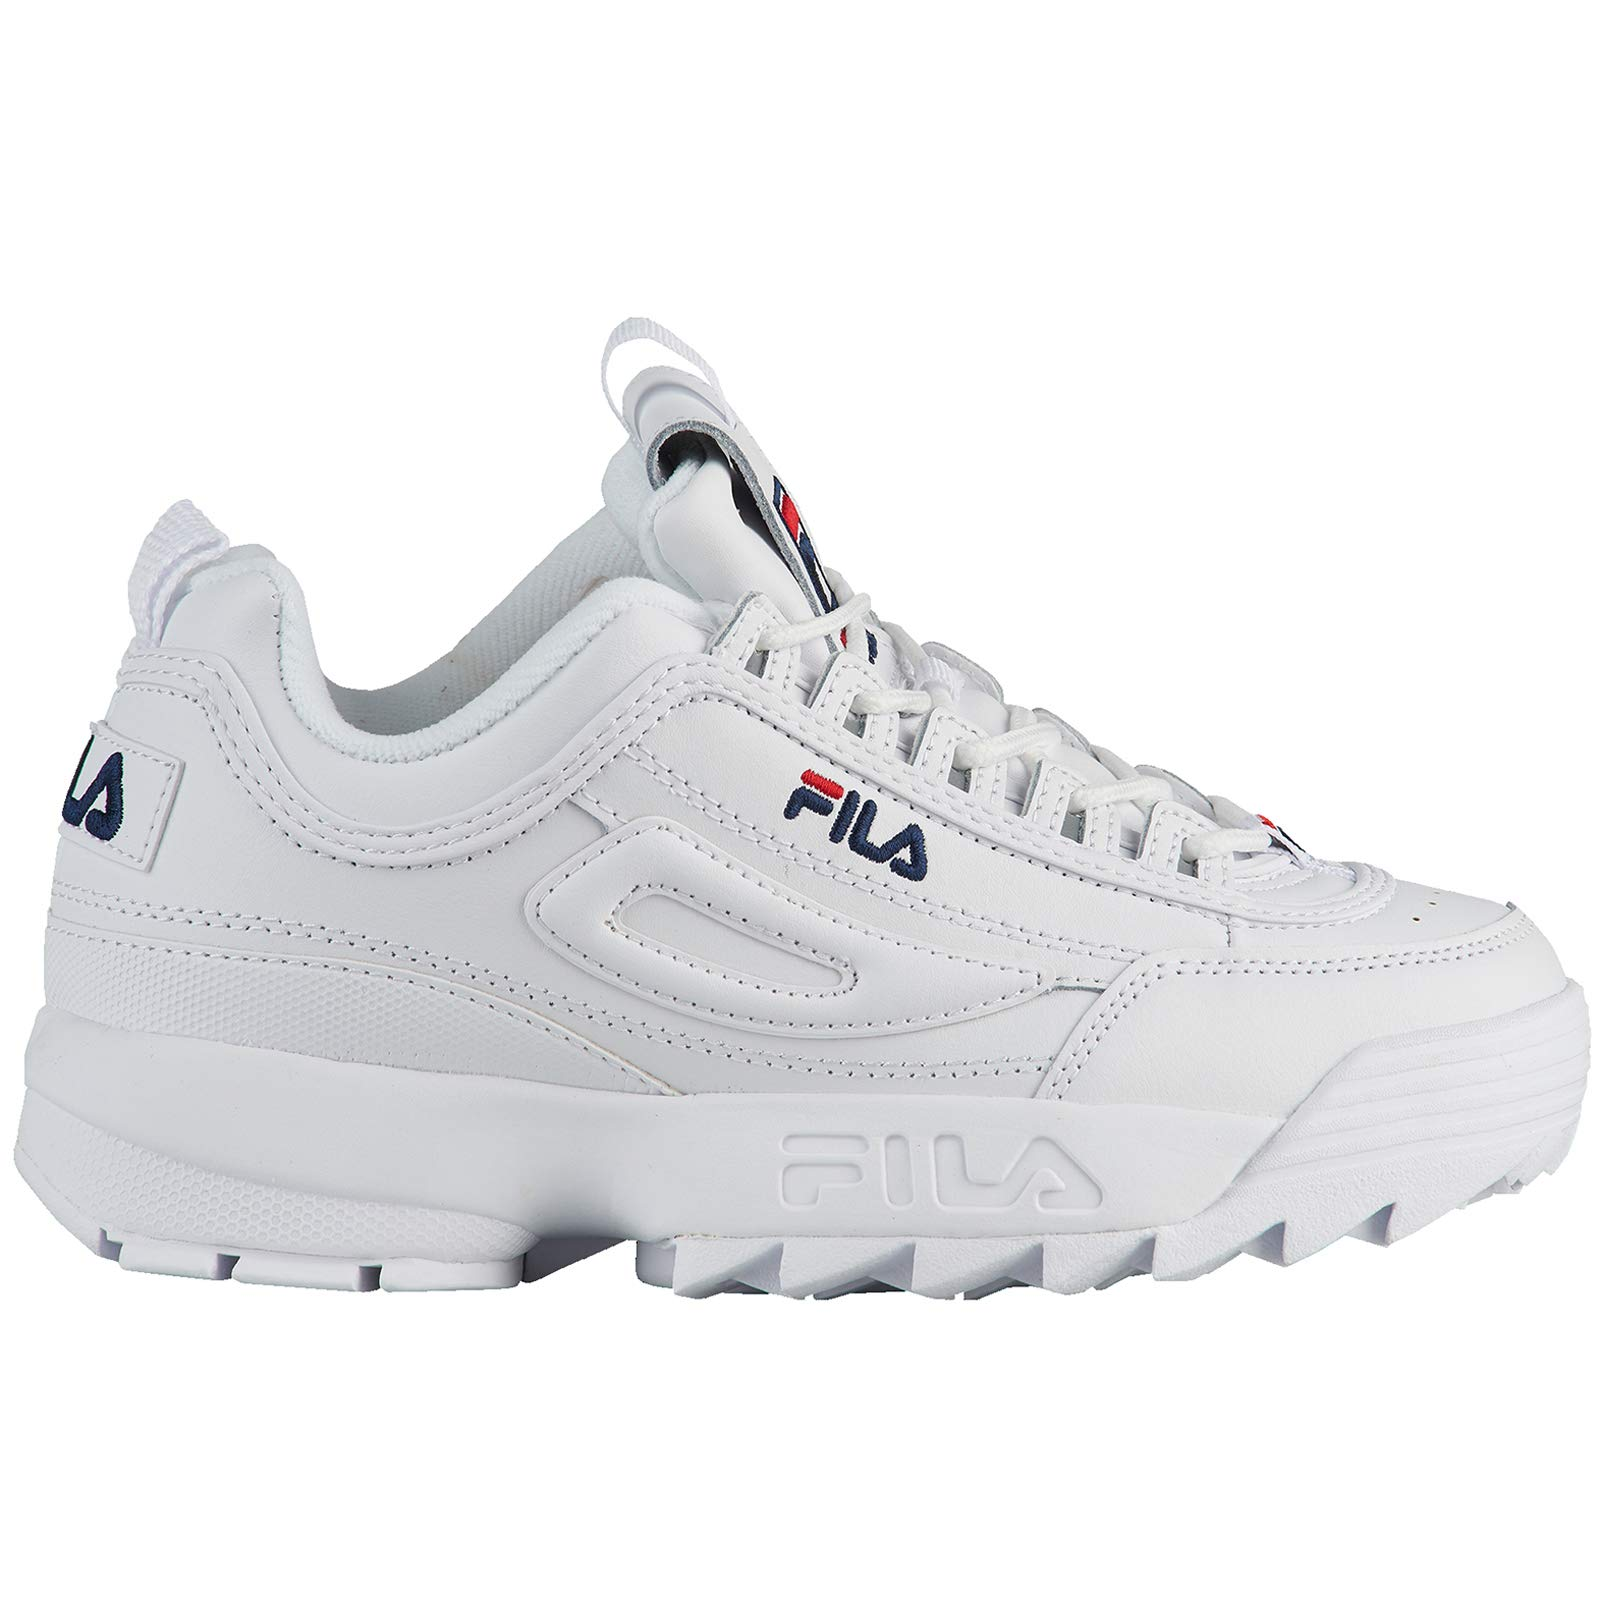 Fila Youth Disruptor II Synthetic White Peacoat Red Trainers 5 US